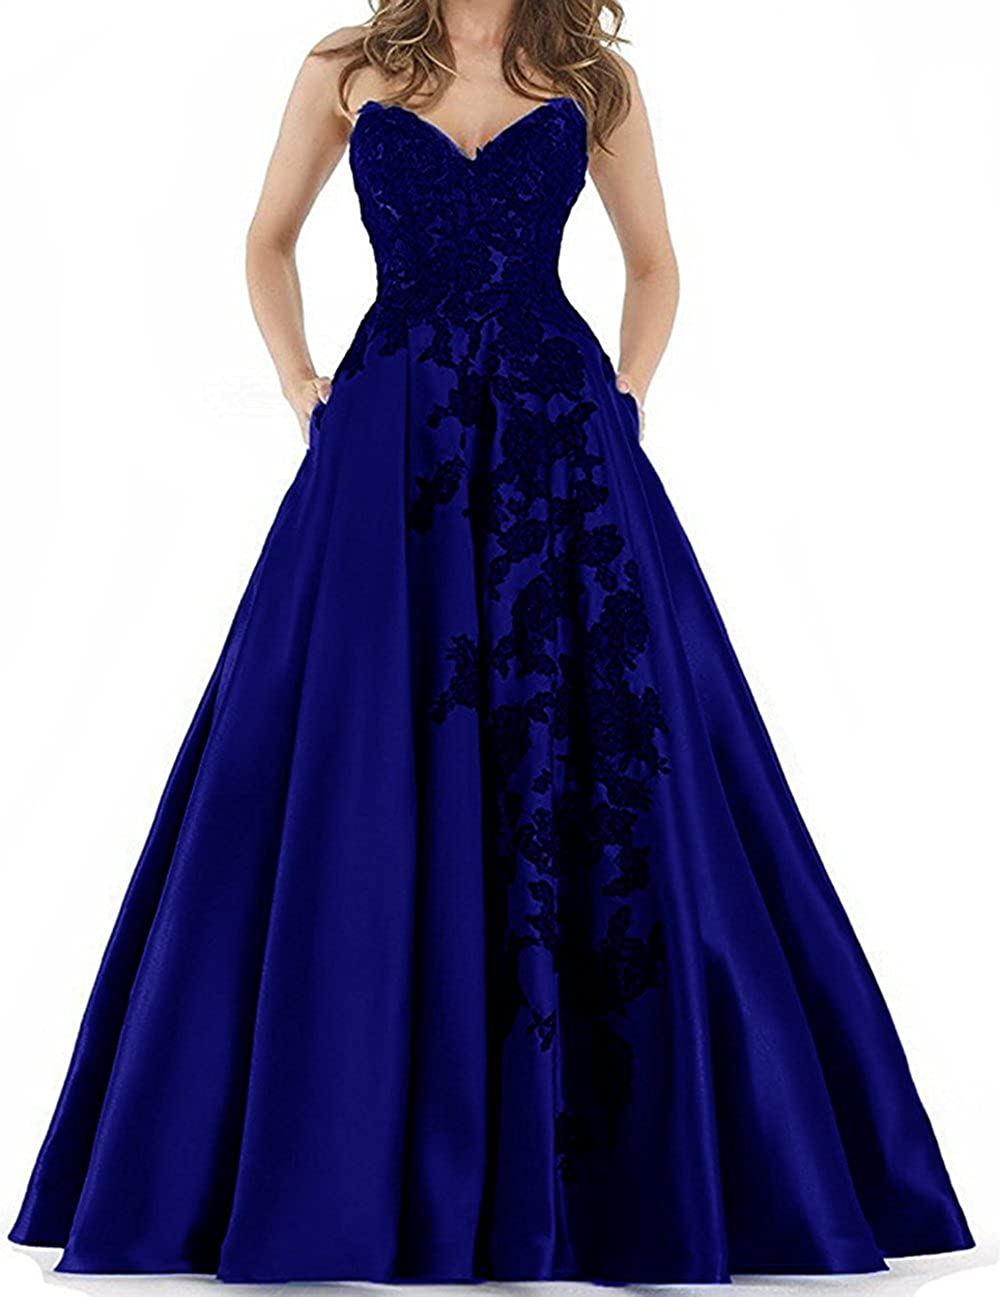 Dark Royal bluee YNQNFS Sweetheart lace Applique Prom Dresses with Pockets Long Satin Evening Party Ball